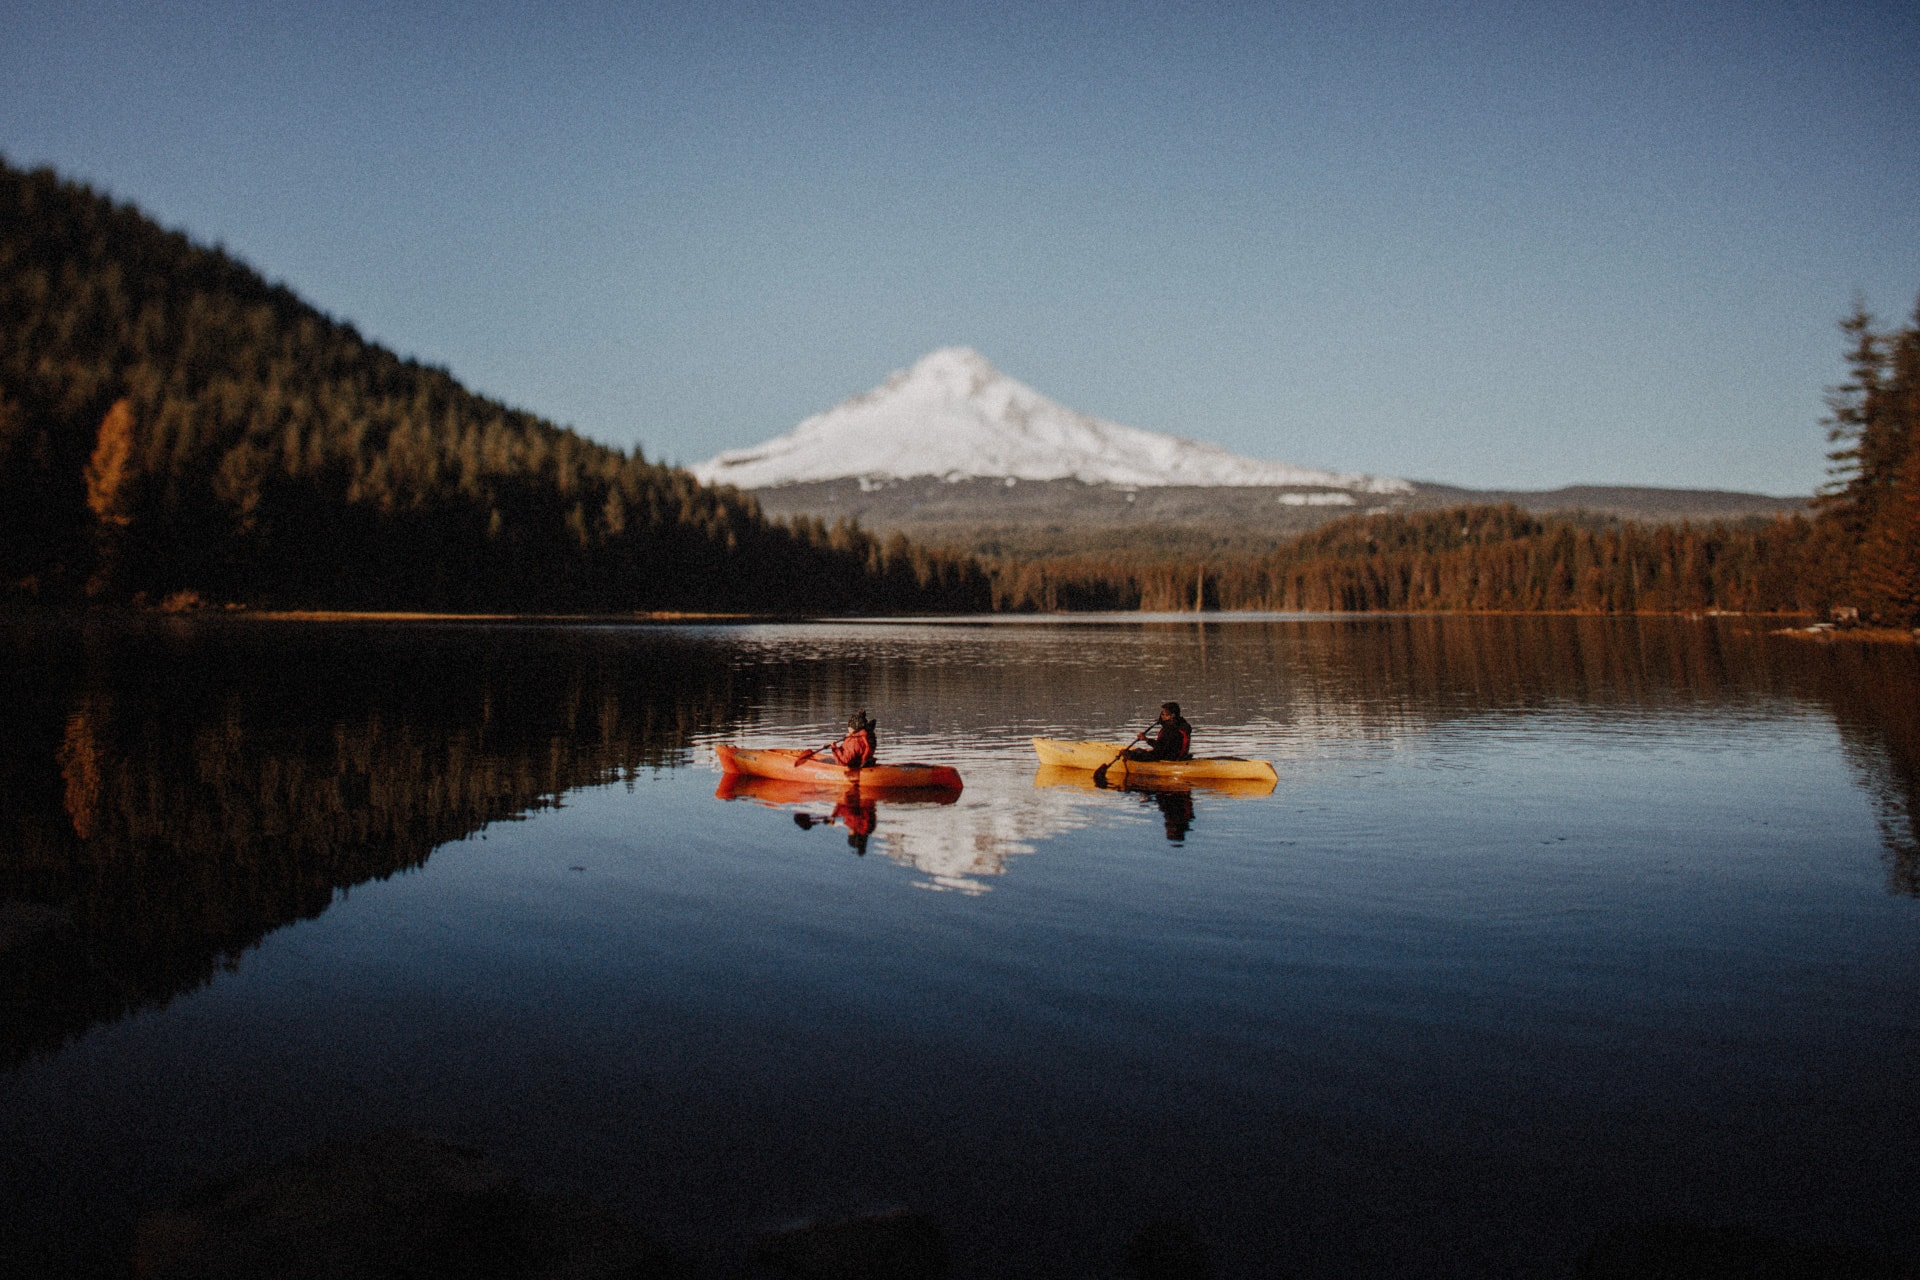 Kayakers at Trillium Lake